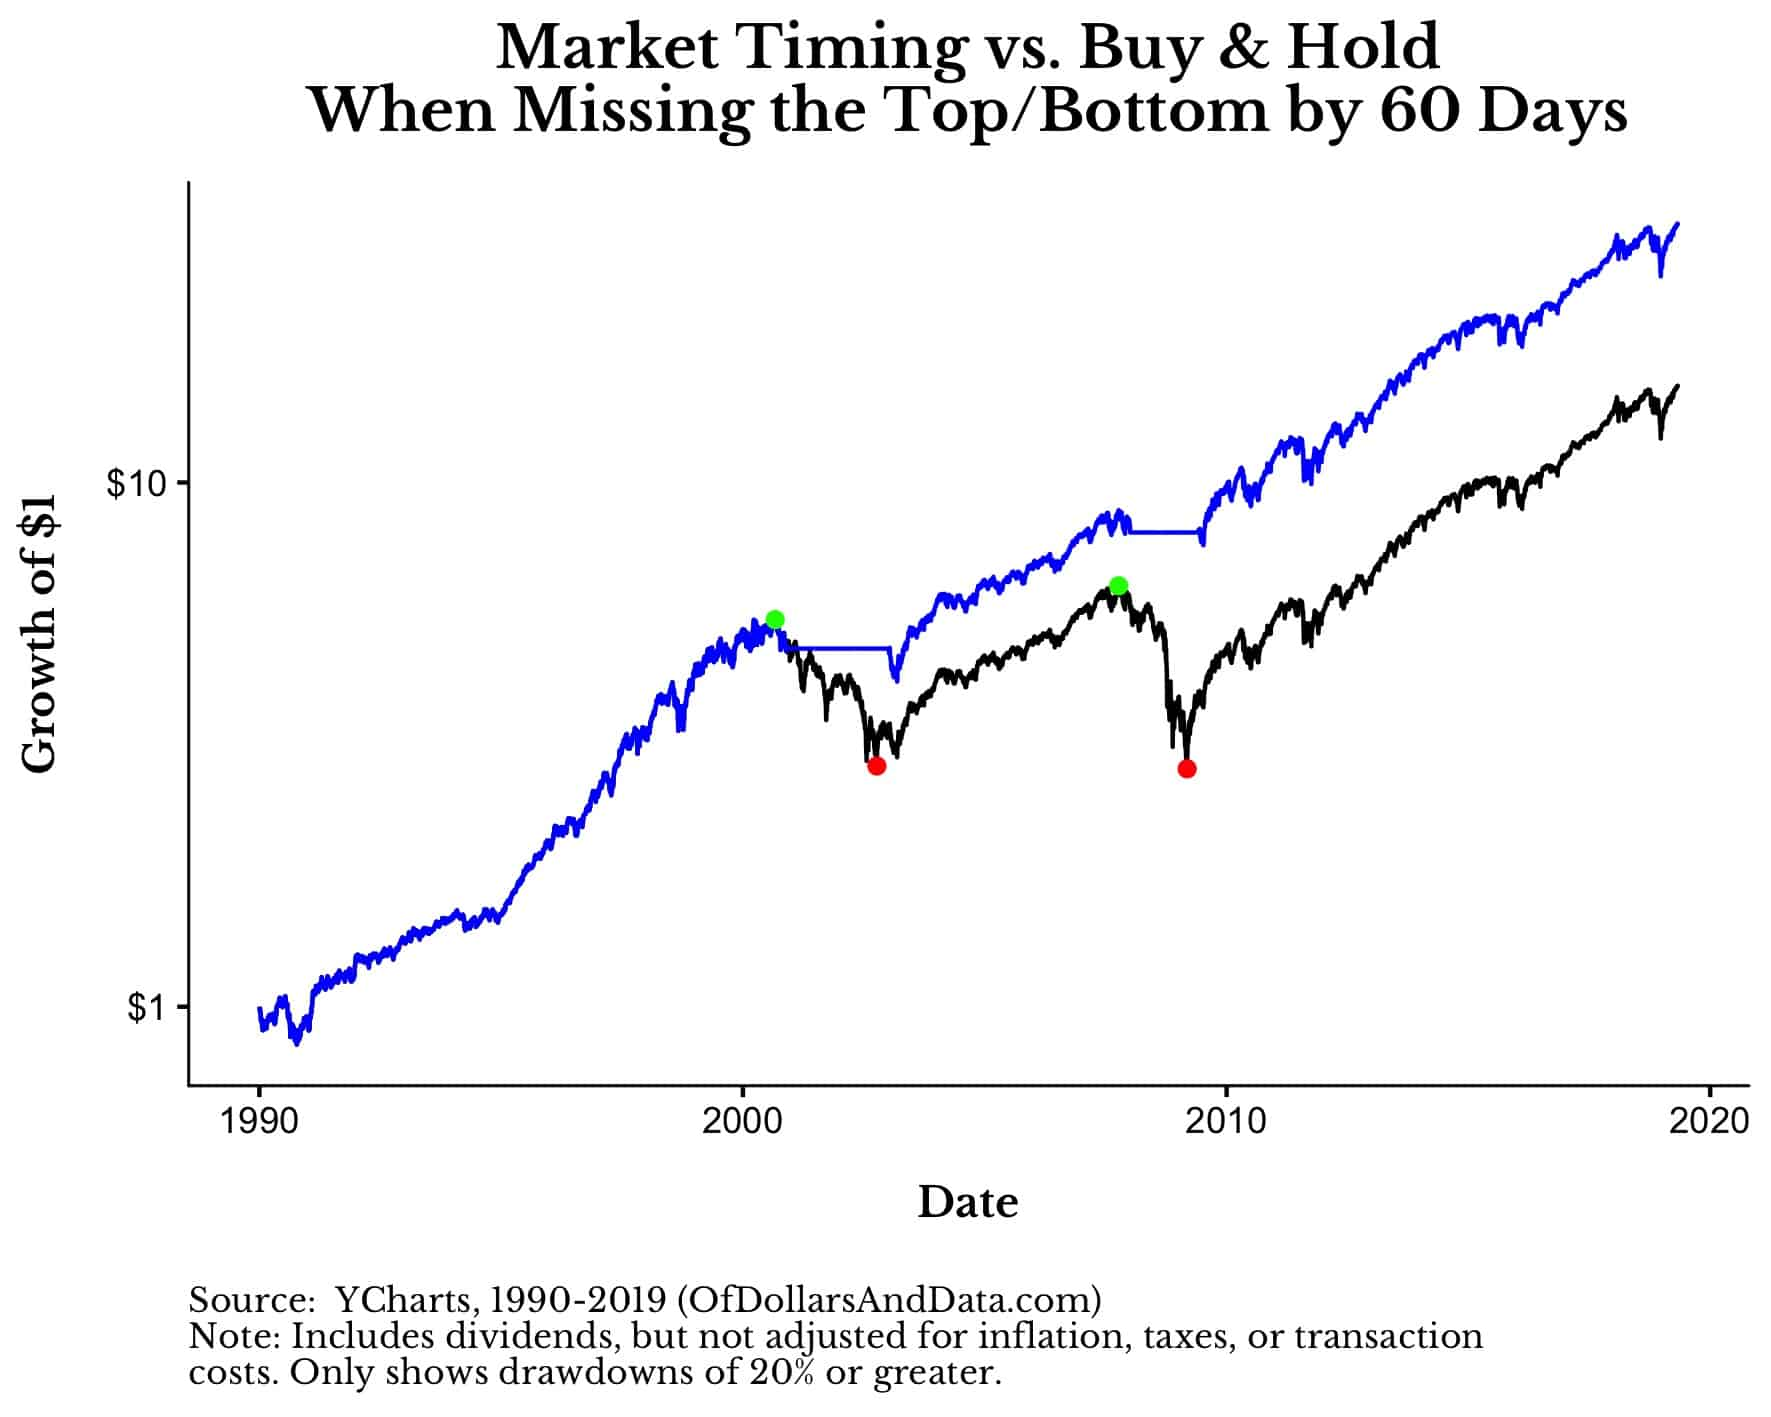 buy and hold vs market timing for the s&p 500 since 1990 with a 60 day timing lag